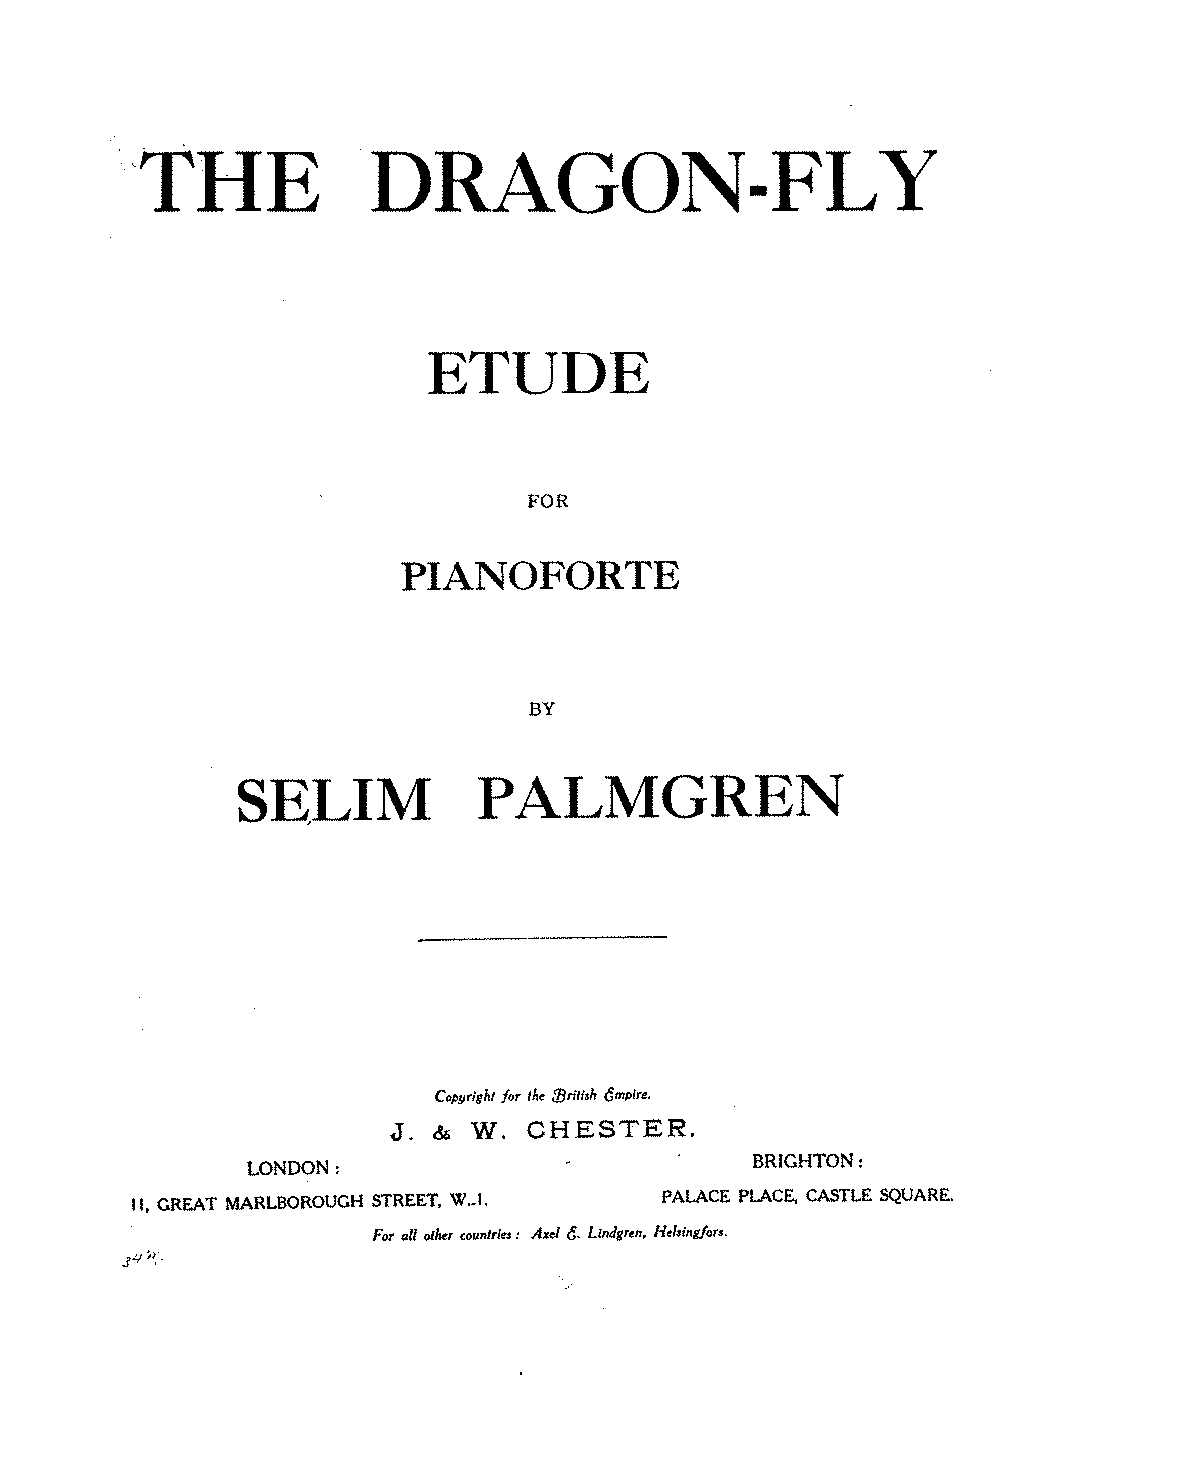 SIBLEY1802.18952.bee1-39087012350460Dragon.pdf